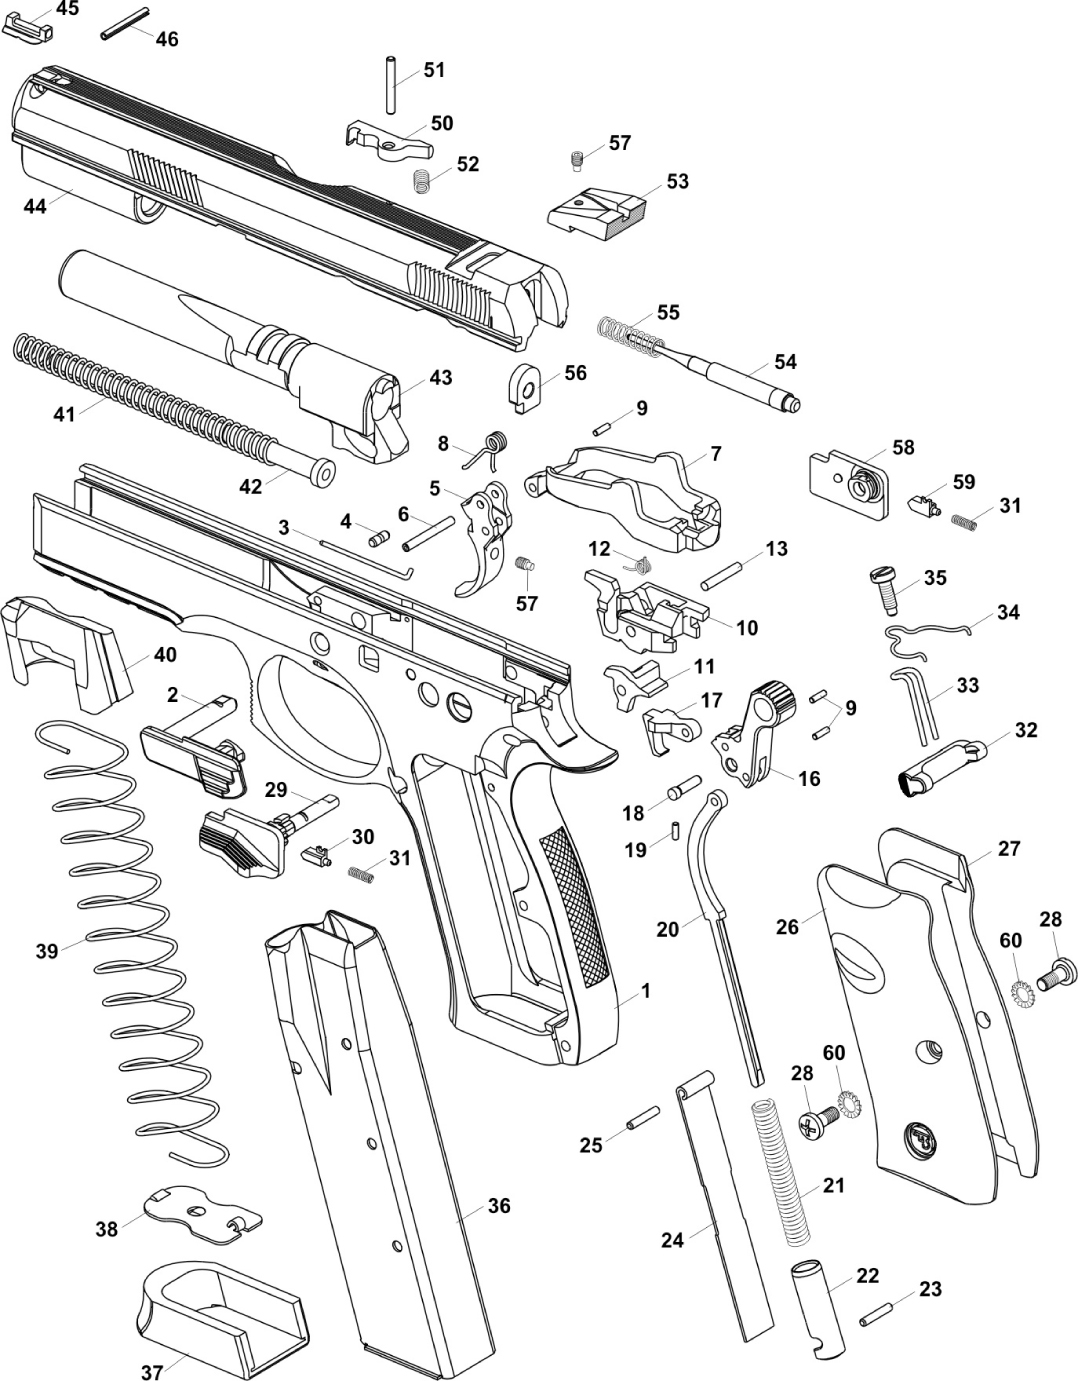 Sti Limited Gun Disassembled